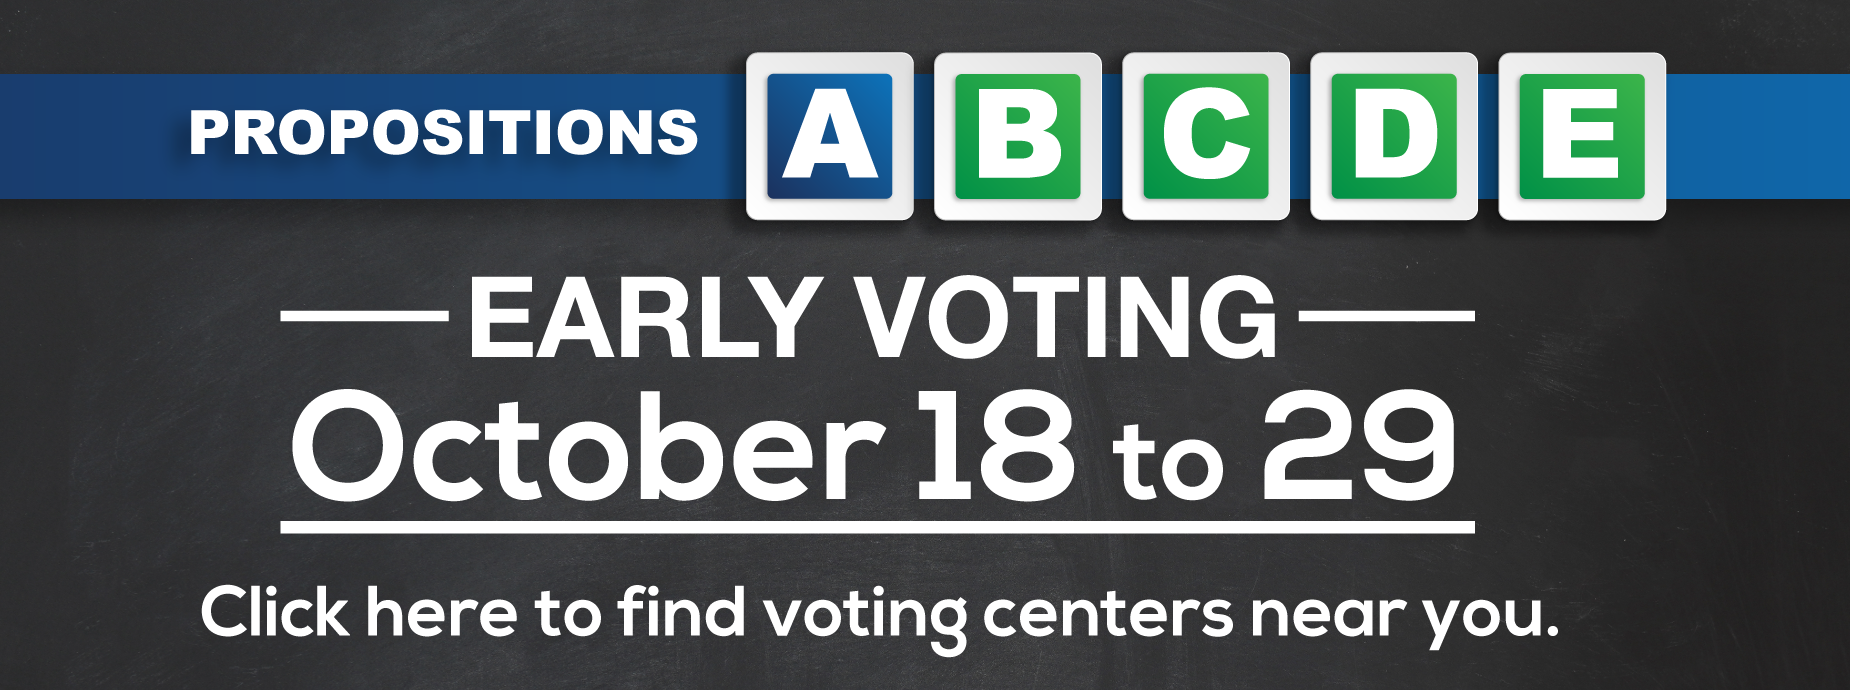 https://www.comalisd.org/apps/pages/VotingInformation